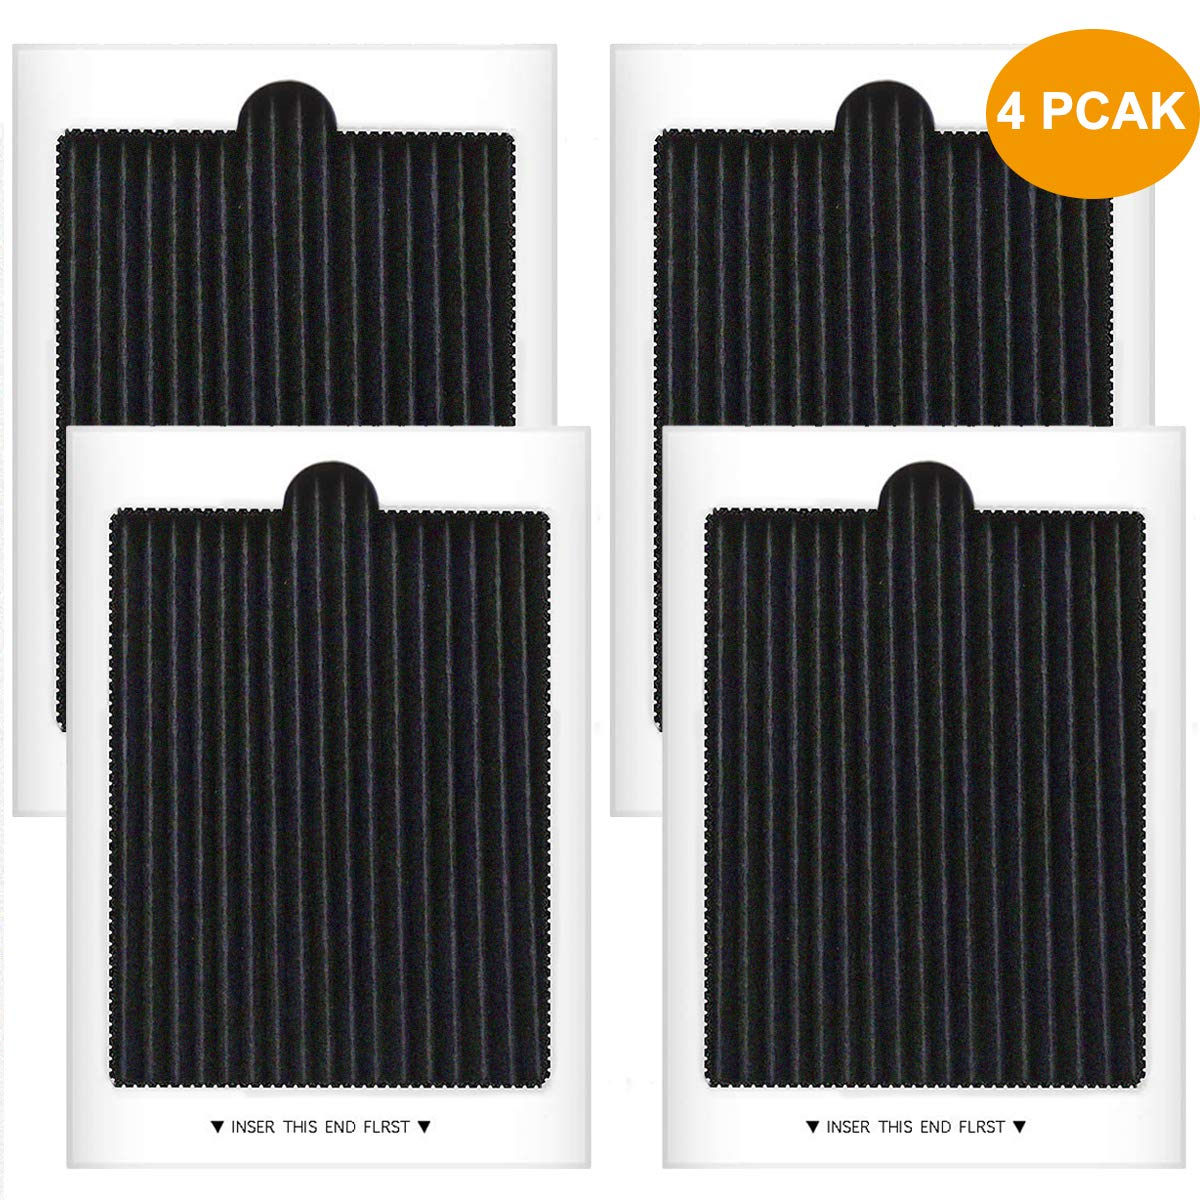 Carbon Activated Refrigerator Air Filter Replacement Compatible with Frigidaire PAULTRA, SCPUREAIR2PK, Electrolux EAFCBF (4 PCS)